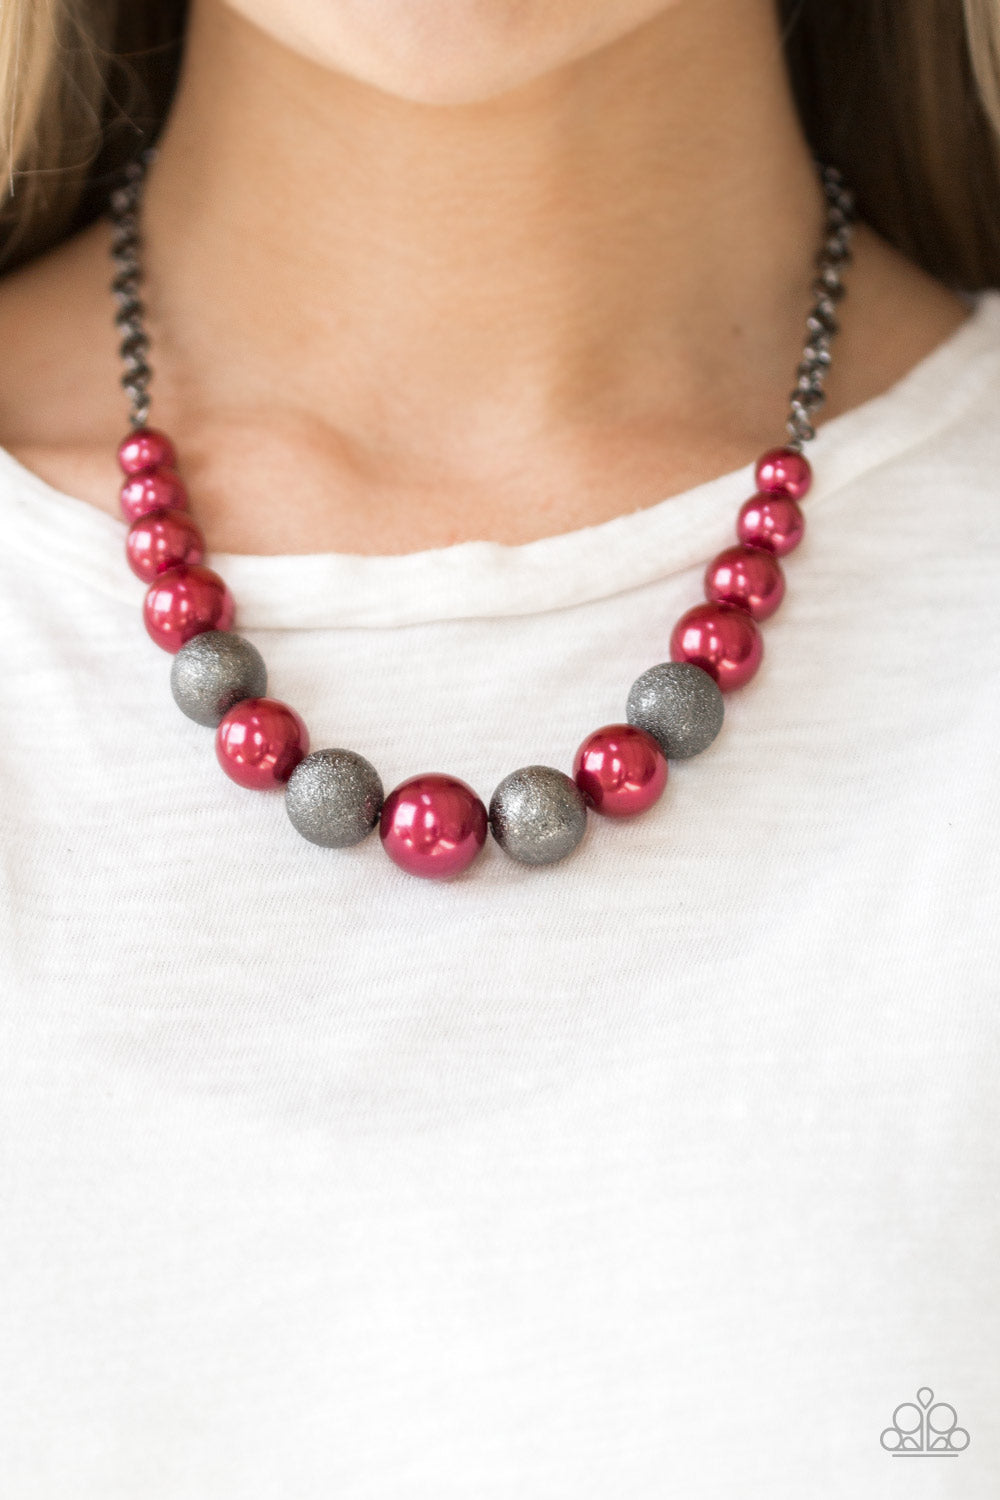 Paparazzi - Color Me CEO - Red  Necklace Set - Classy Jewels by Linda